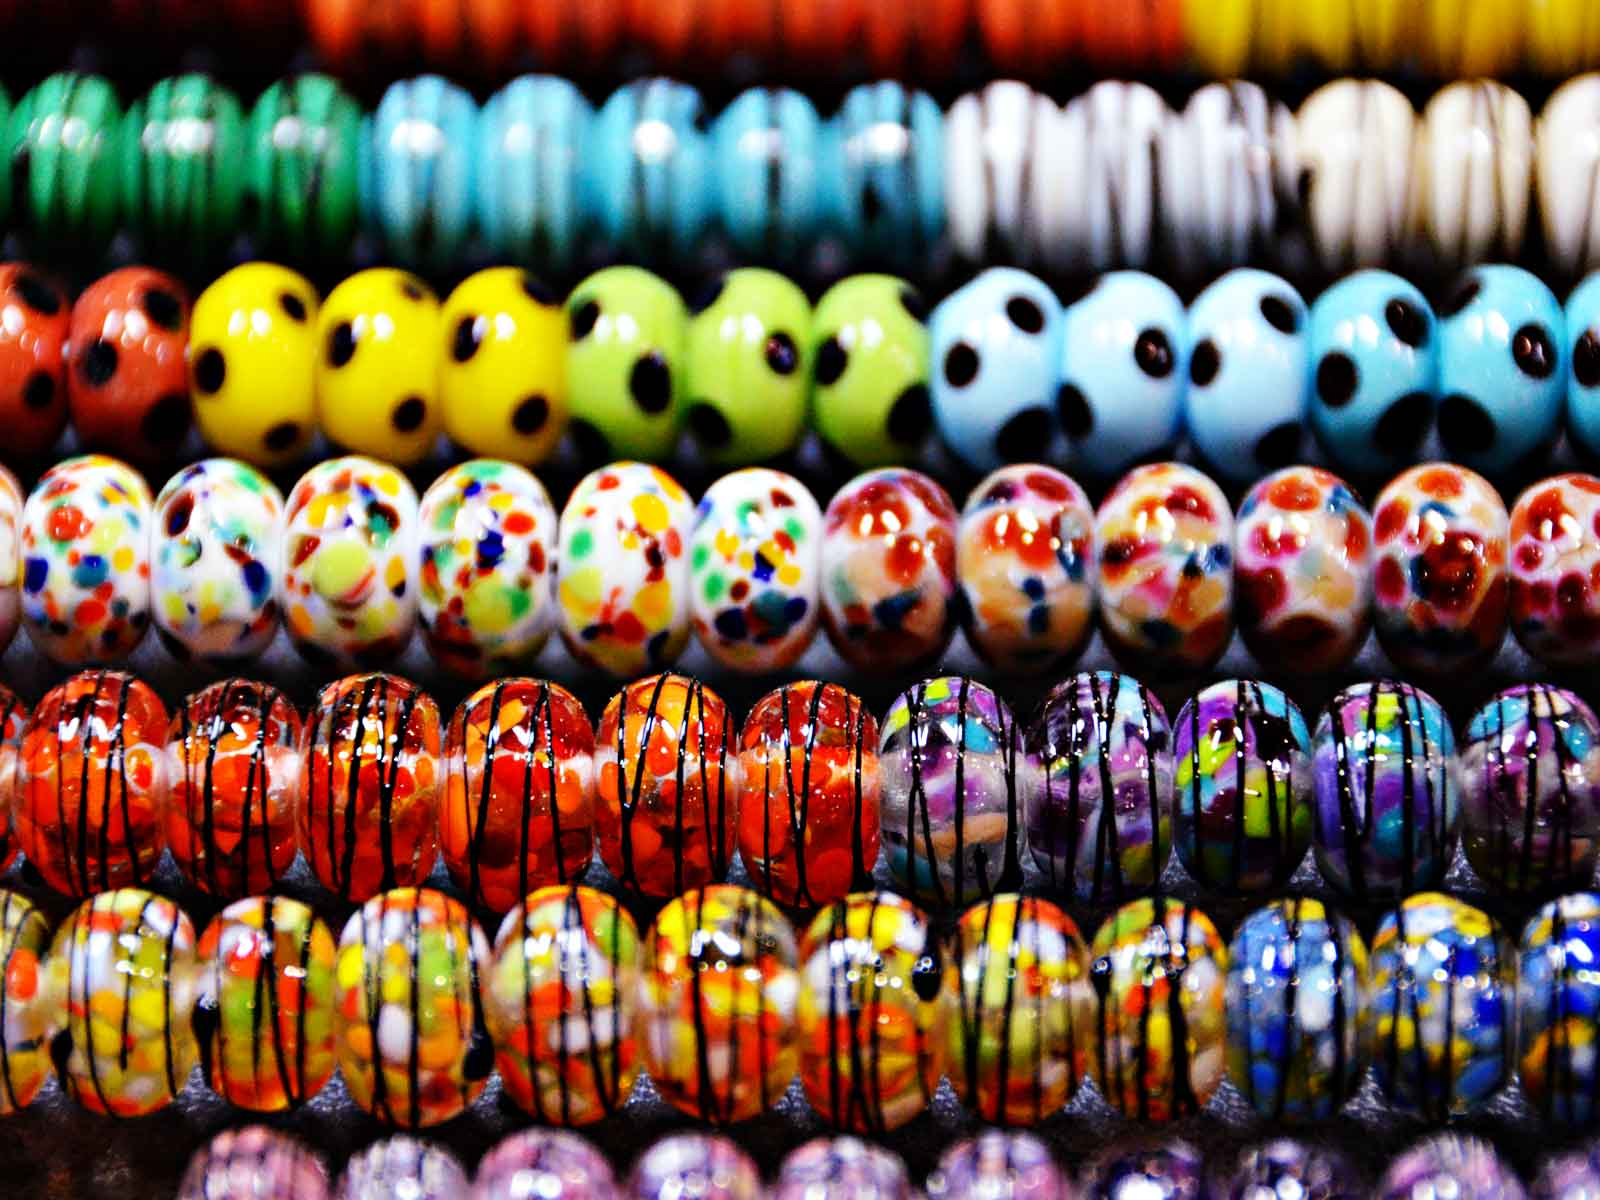 Lampwork glass beads at Bead and Button Show